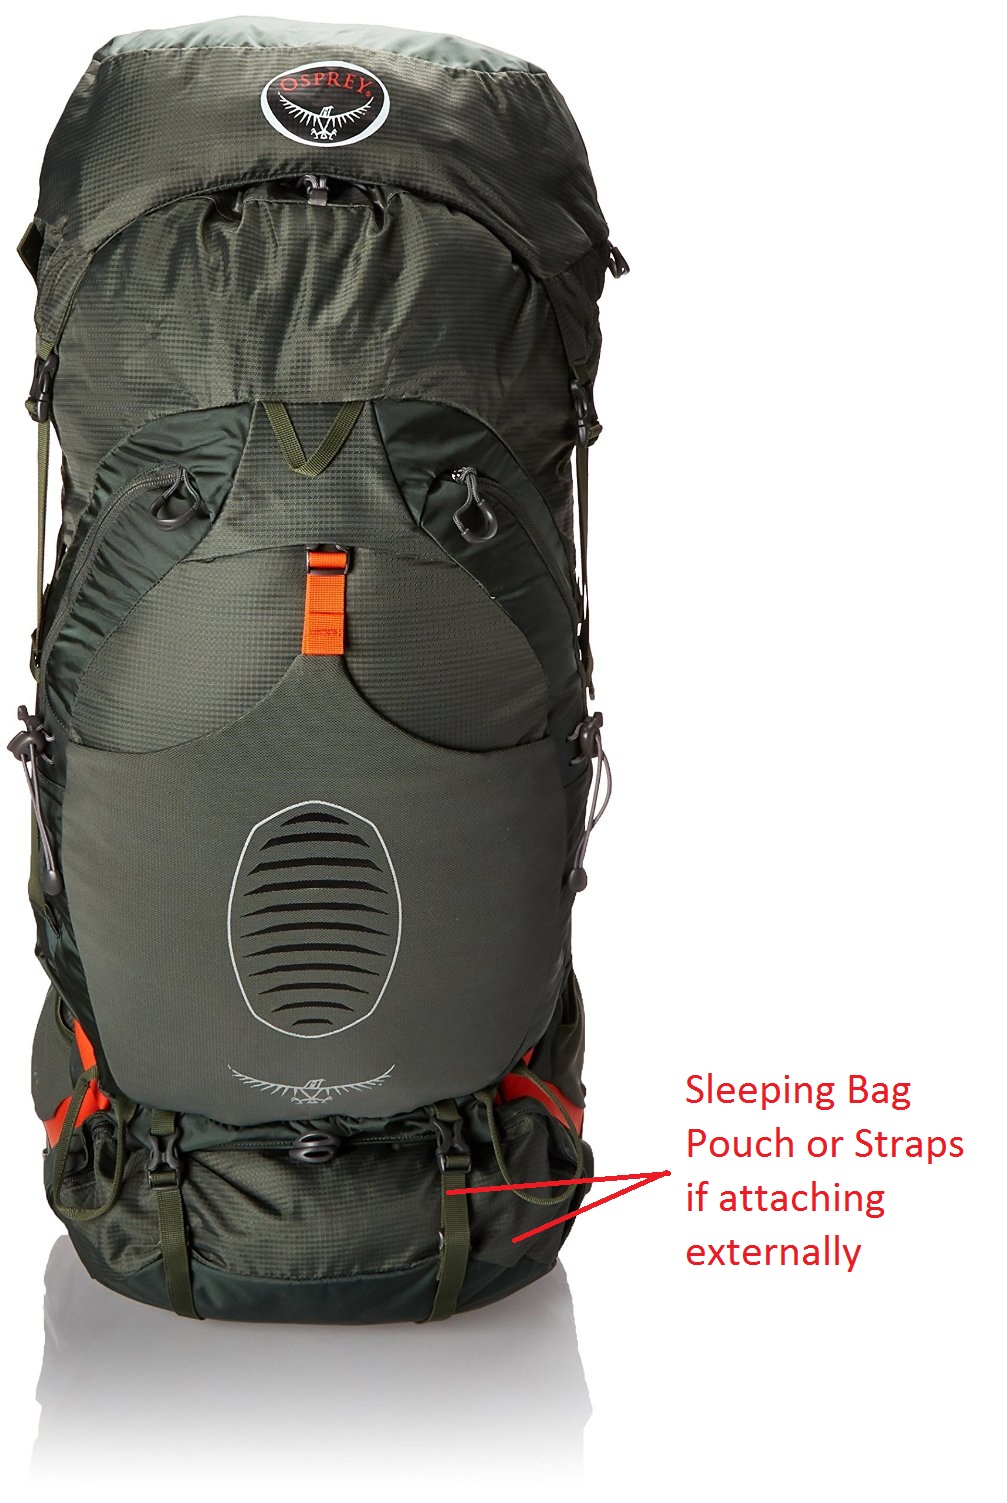 Osprey Mens Atmos 65 AG - Front sleeping bag comment